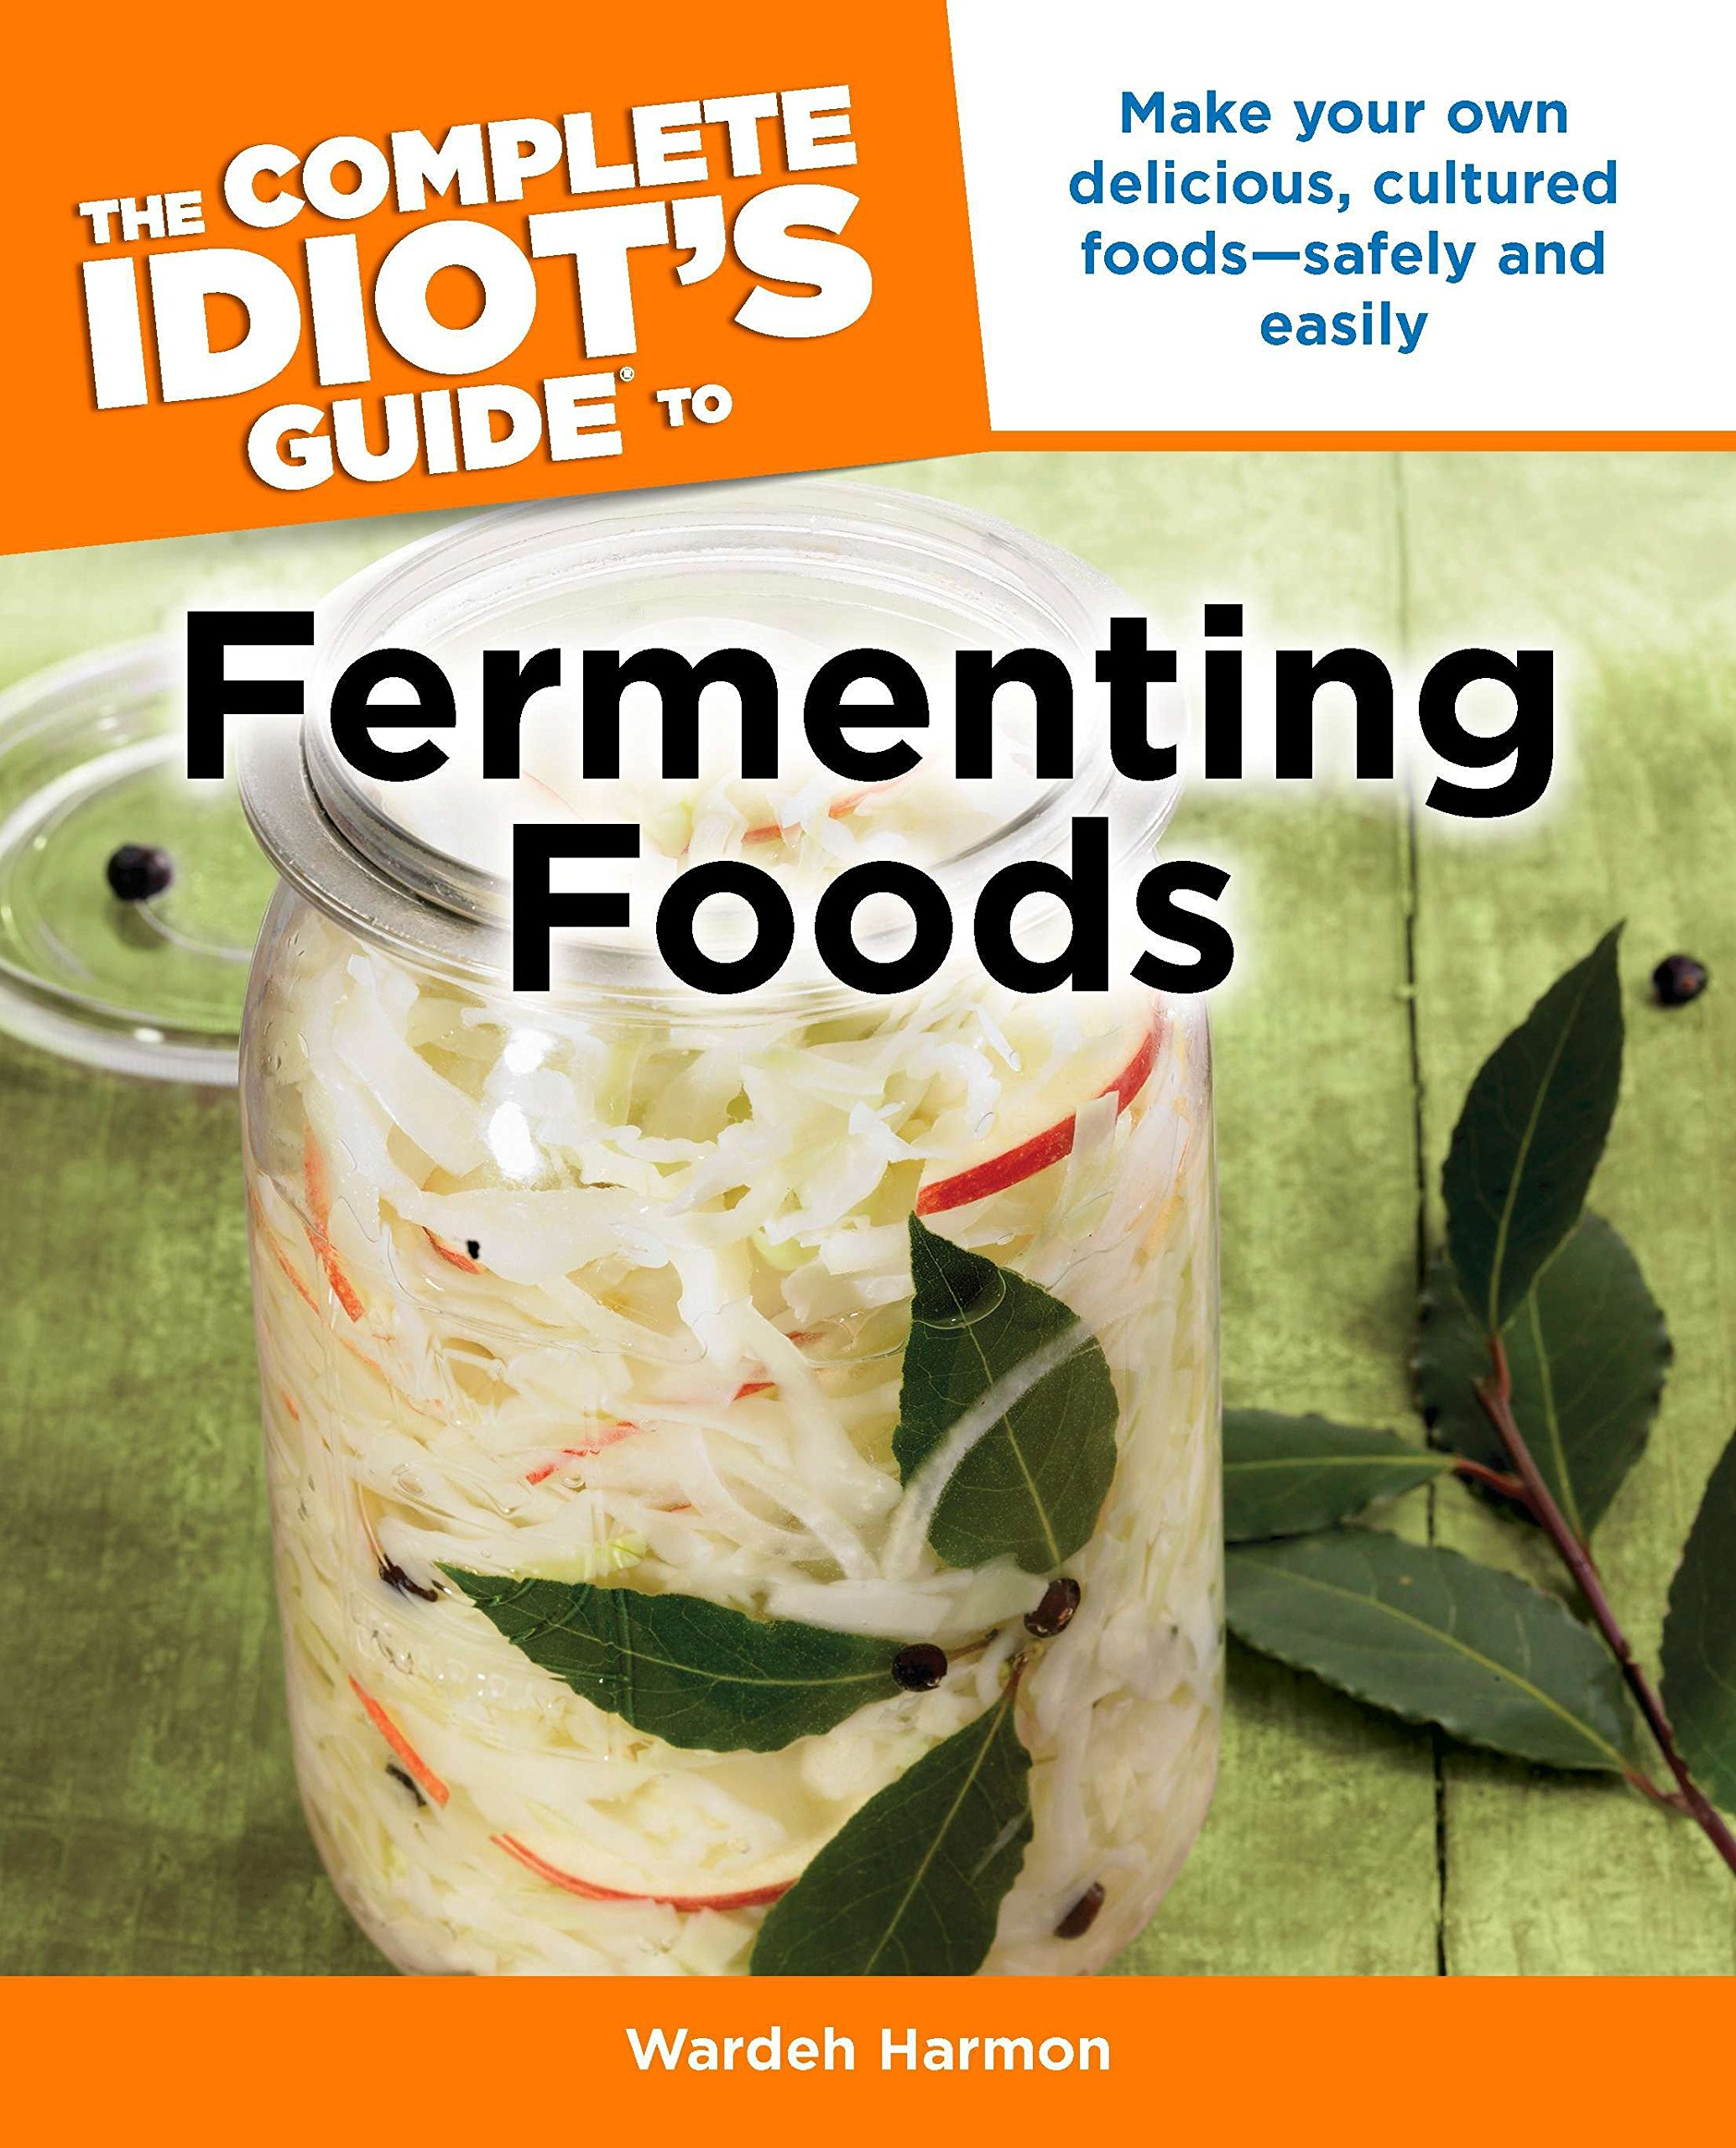 The Complete Idiot's Guide to Fermenting Foods (Complete Idiot's Guides  (Lifestyle Paperback)): Wardeh Harmon: 8601200675931: Amazon.com: Books